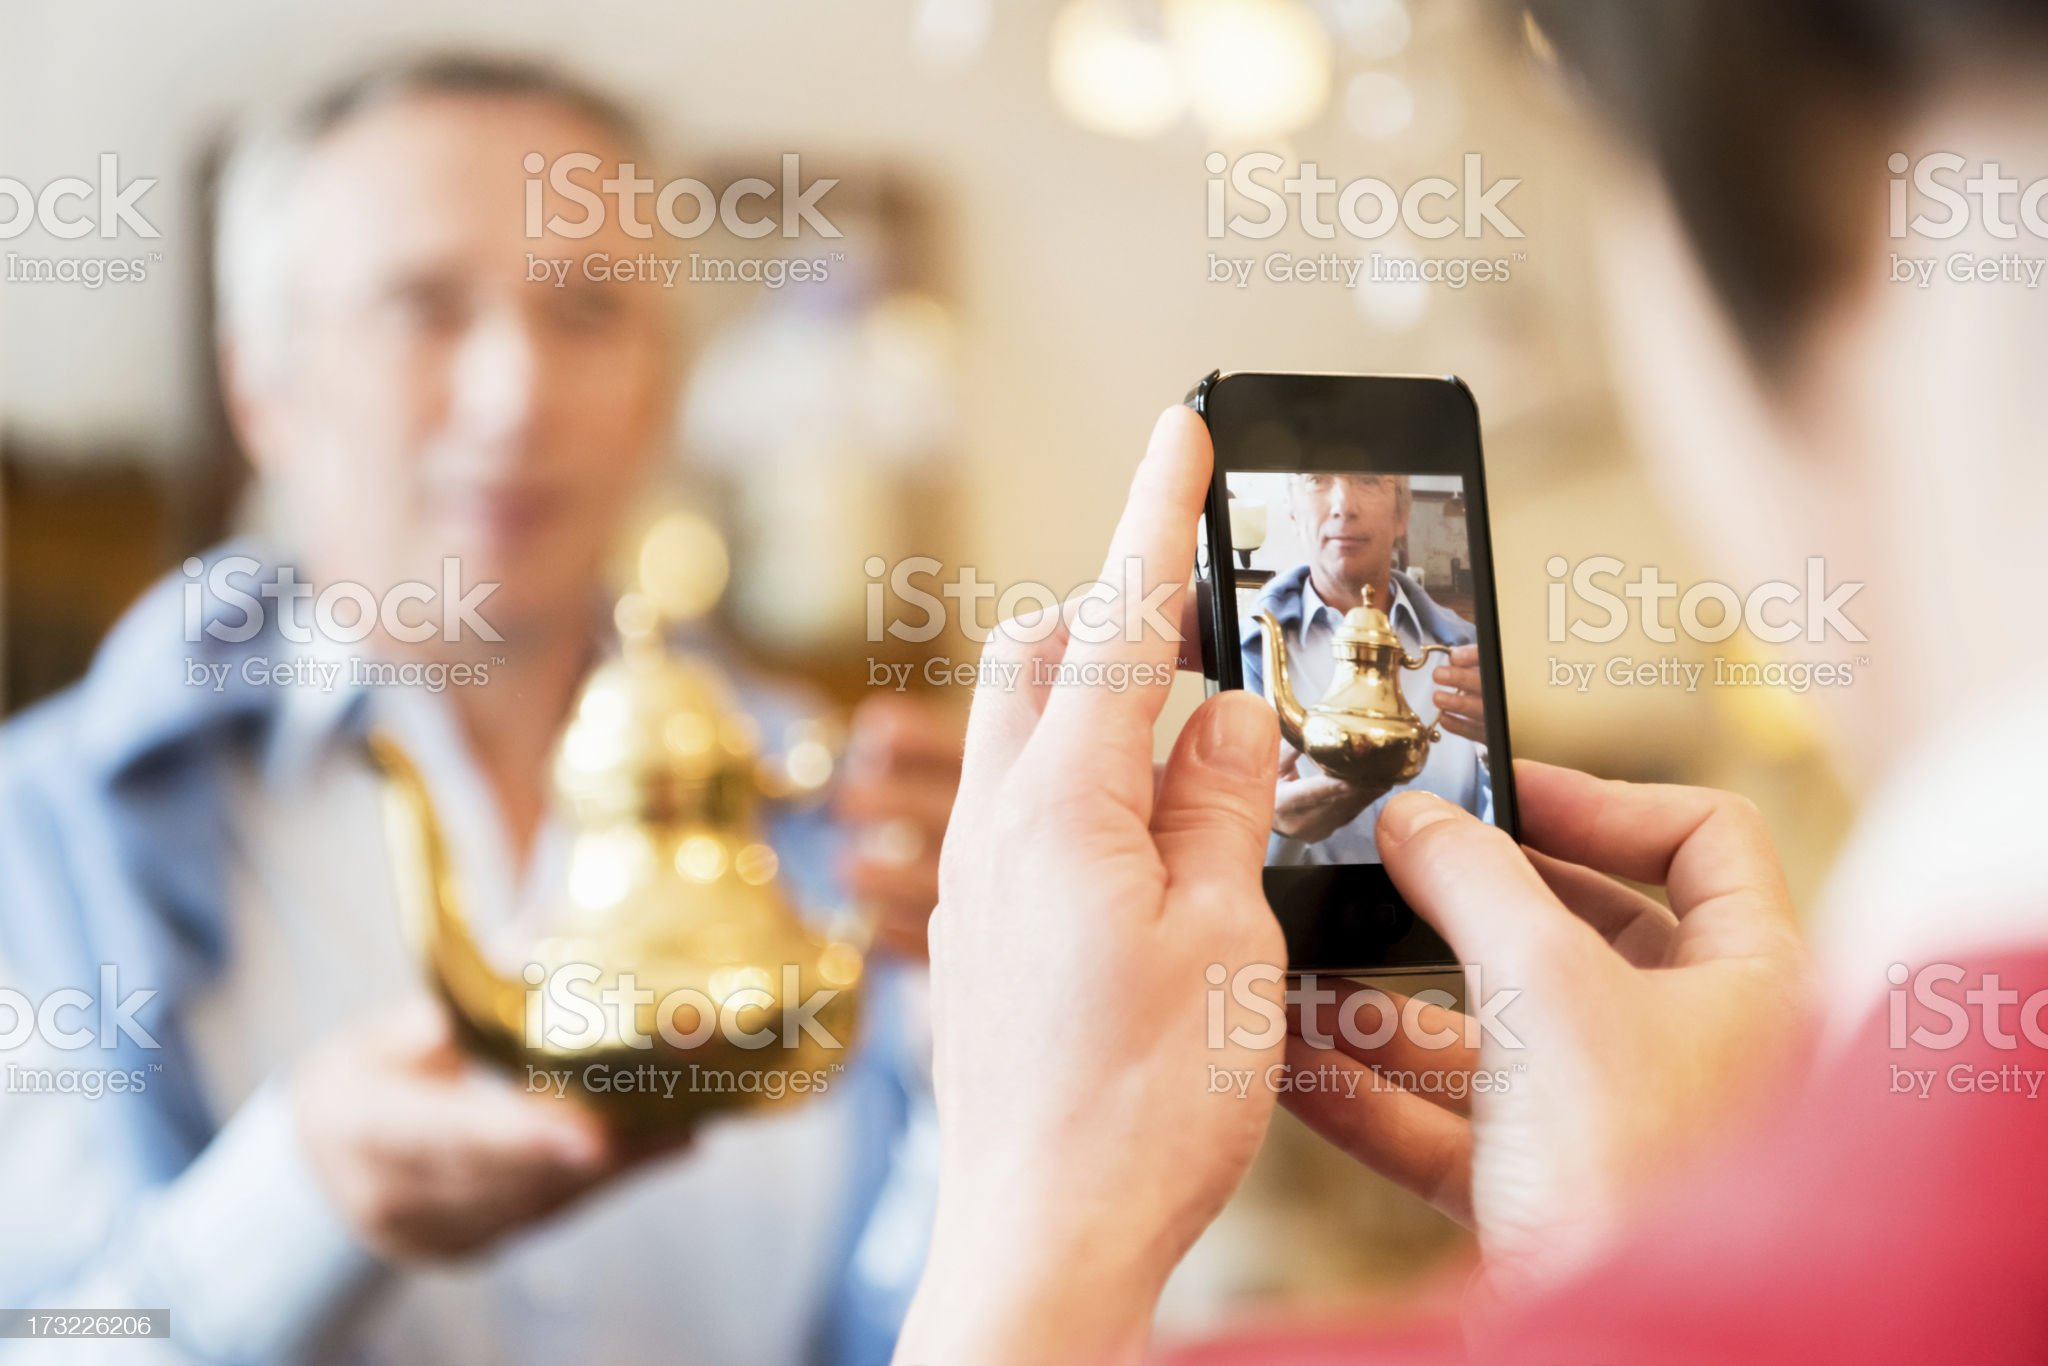 Tourists Inside Antique Store Taking Pictures royalty-free stock photo